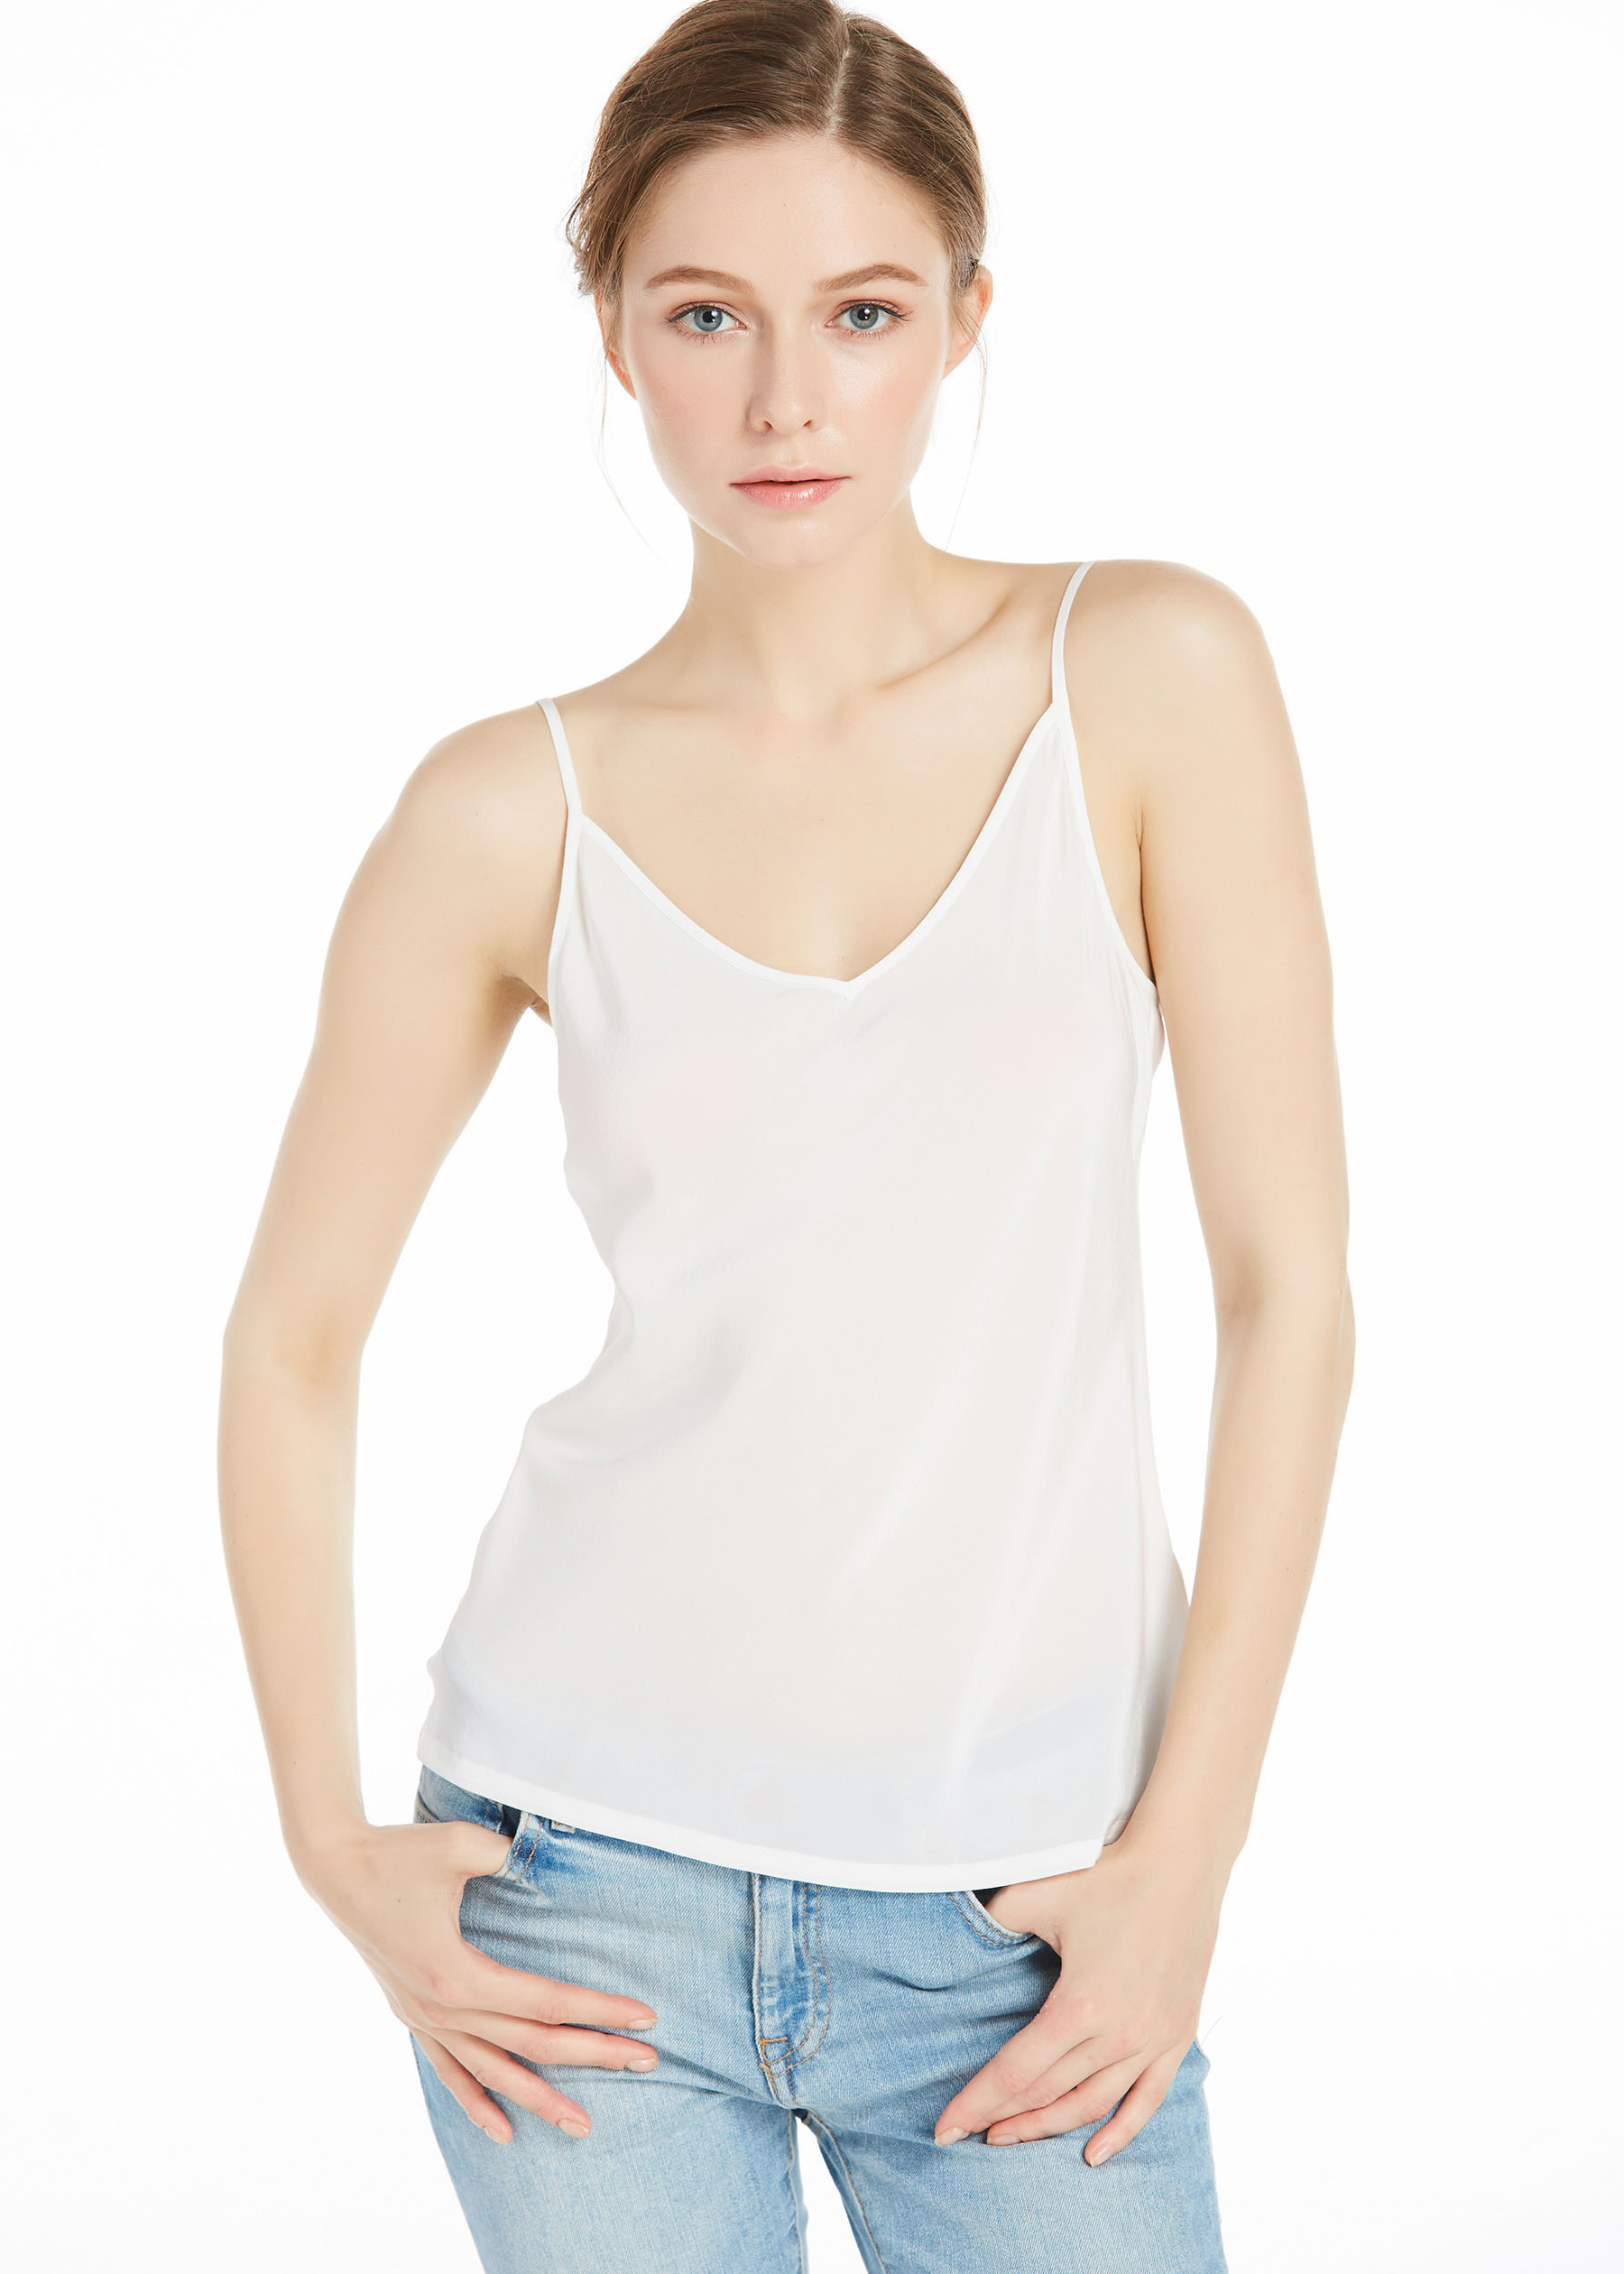 Used for layering or as a summer outer garment, the camisole, tank, and tube top can be fashionable and comfortable style choices. These multifunctional garments are versatile additions to any woman's wardrobe. Differences between camisoles, tanks, and tube tops.